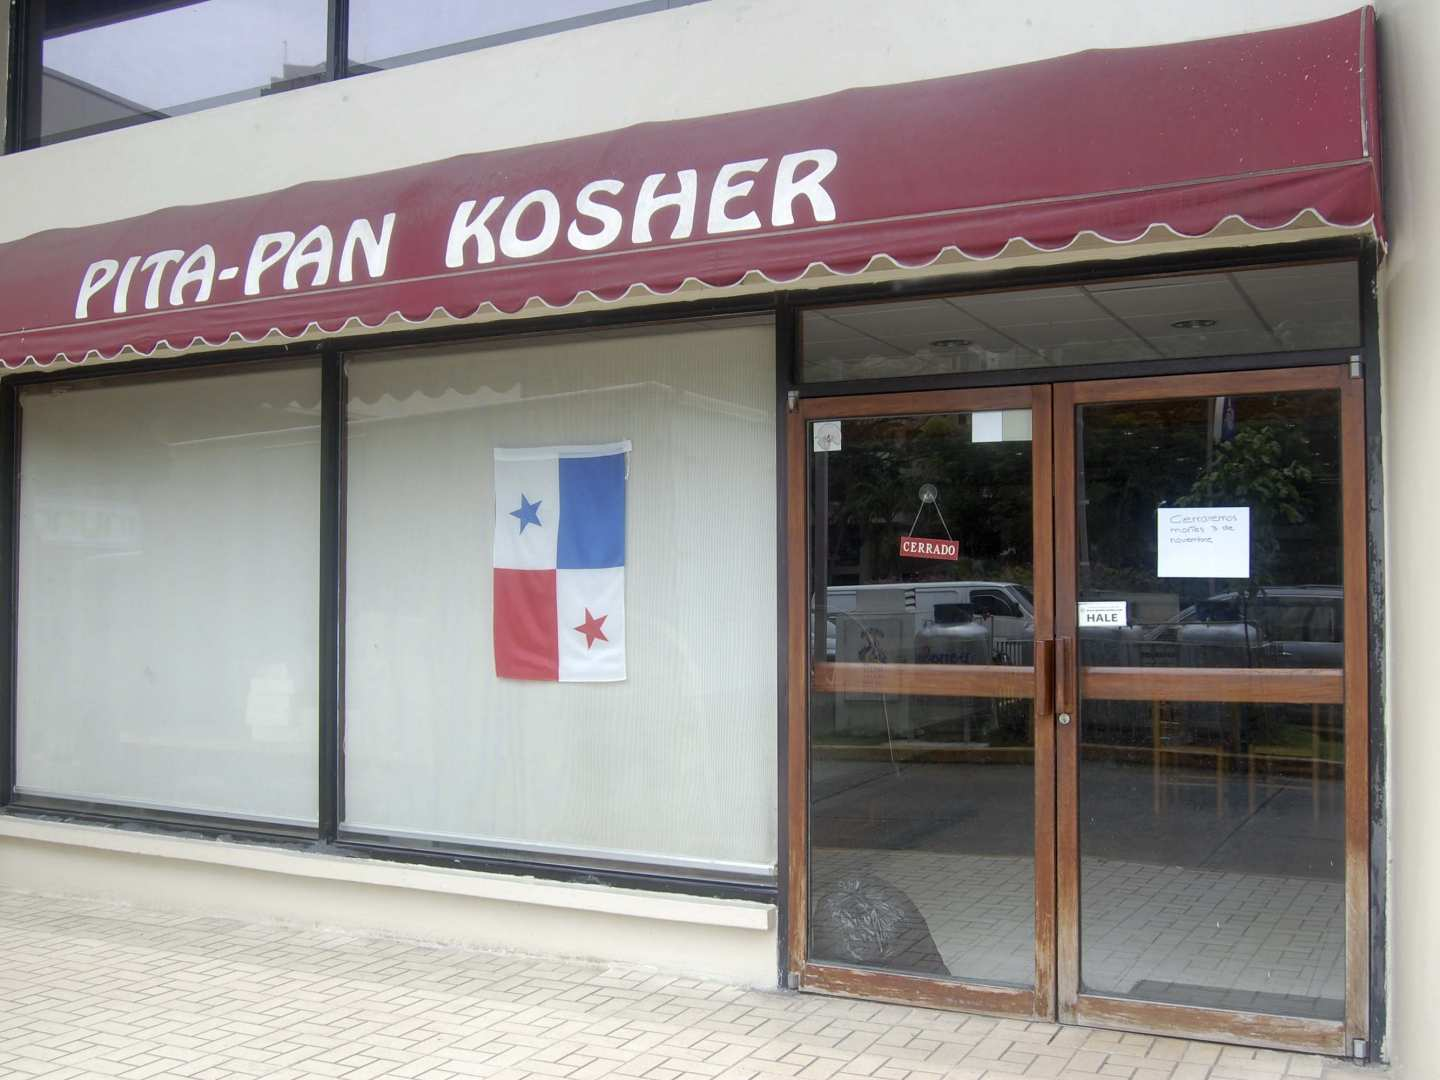 Pita-Pan Kosher